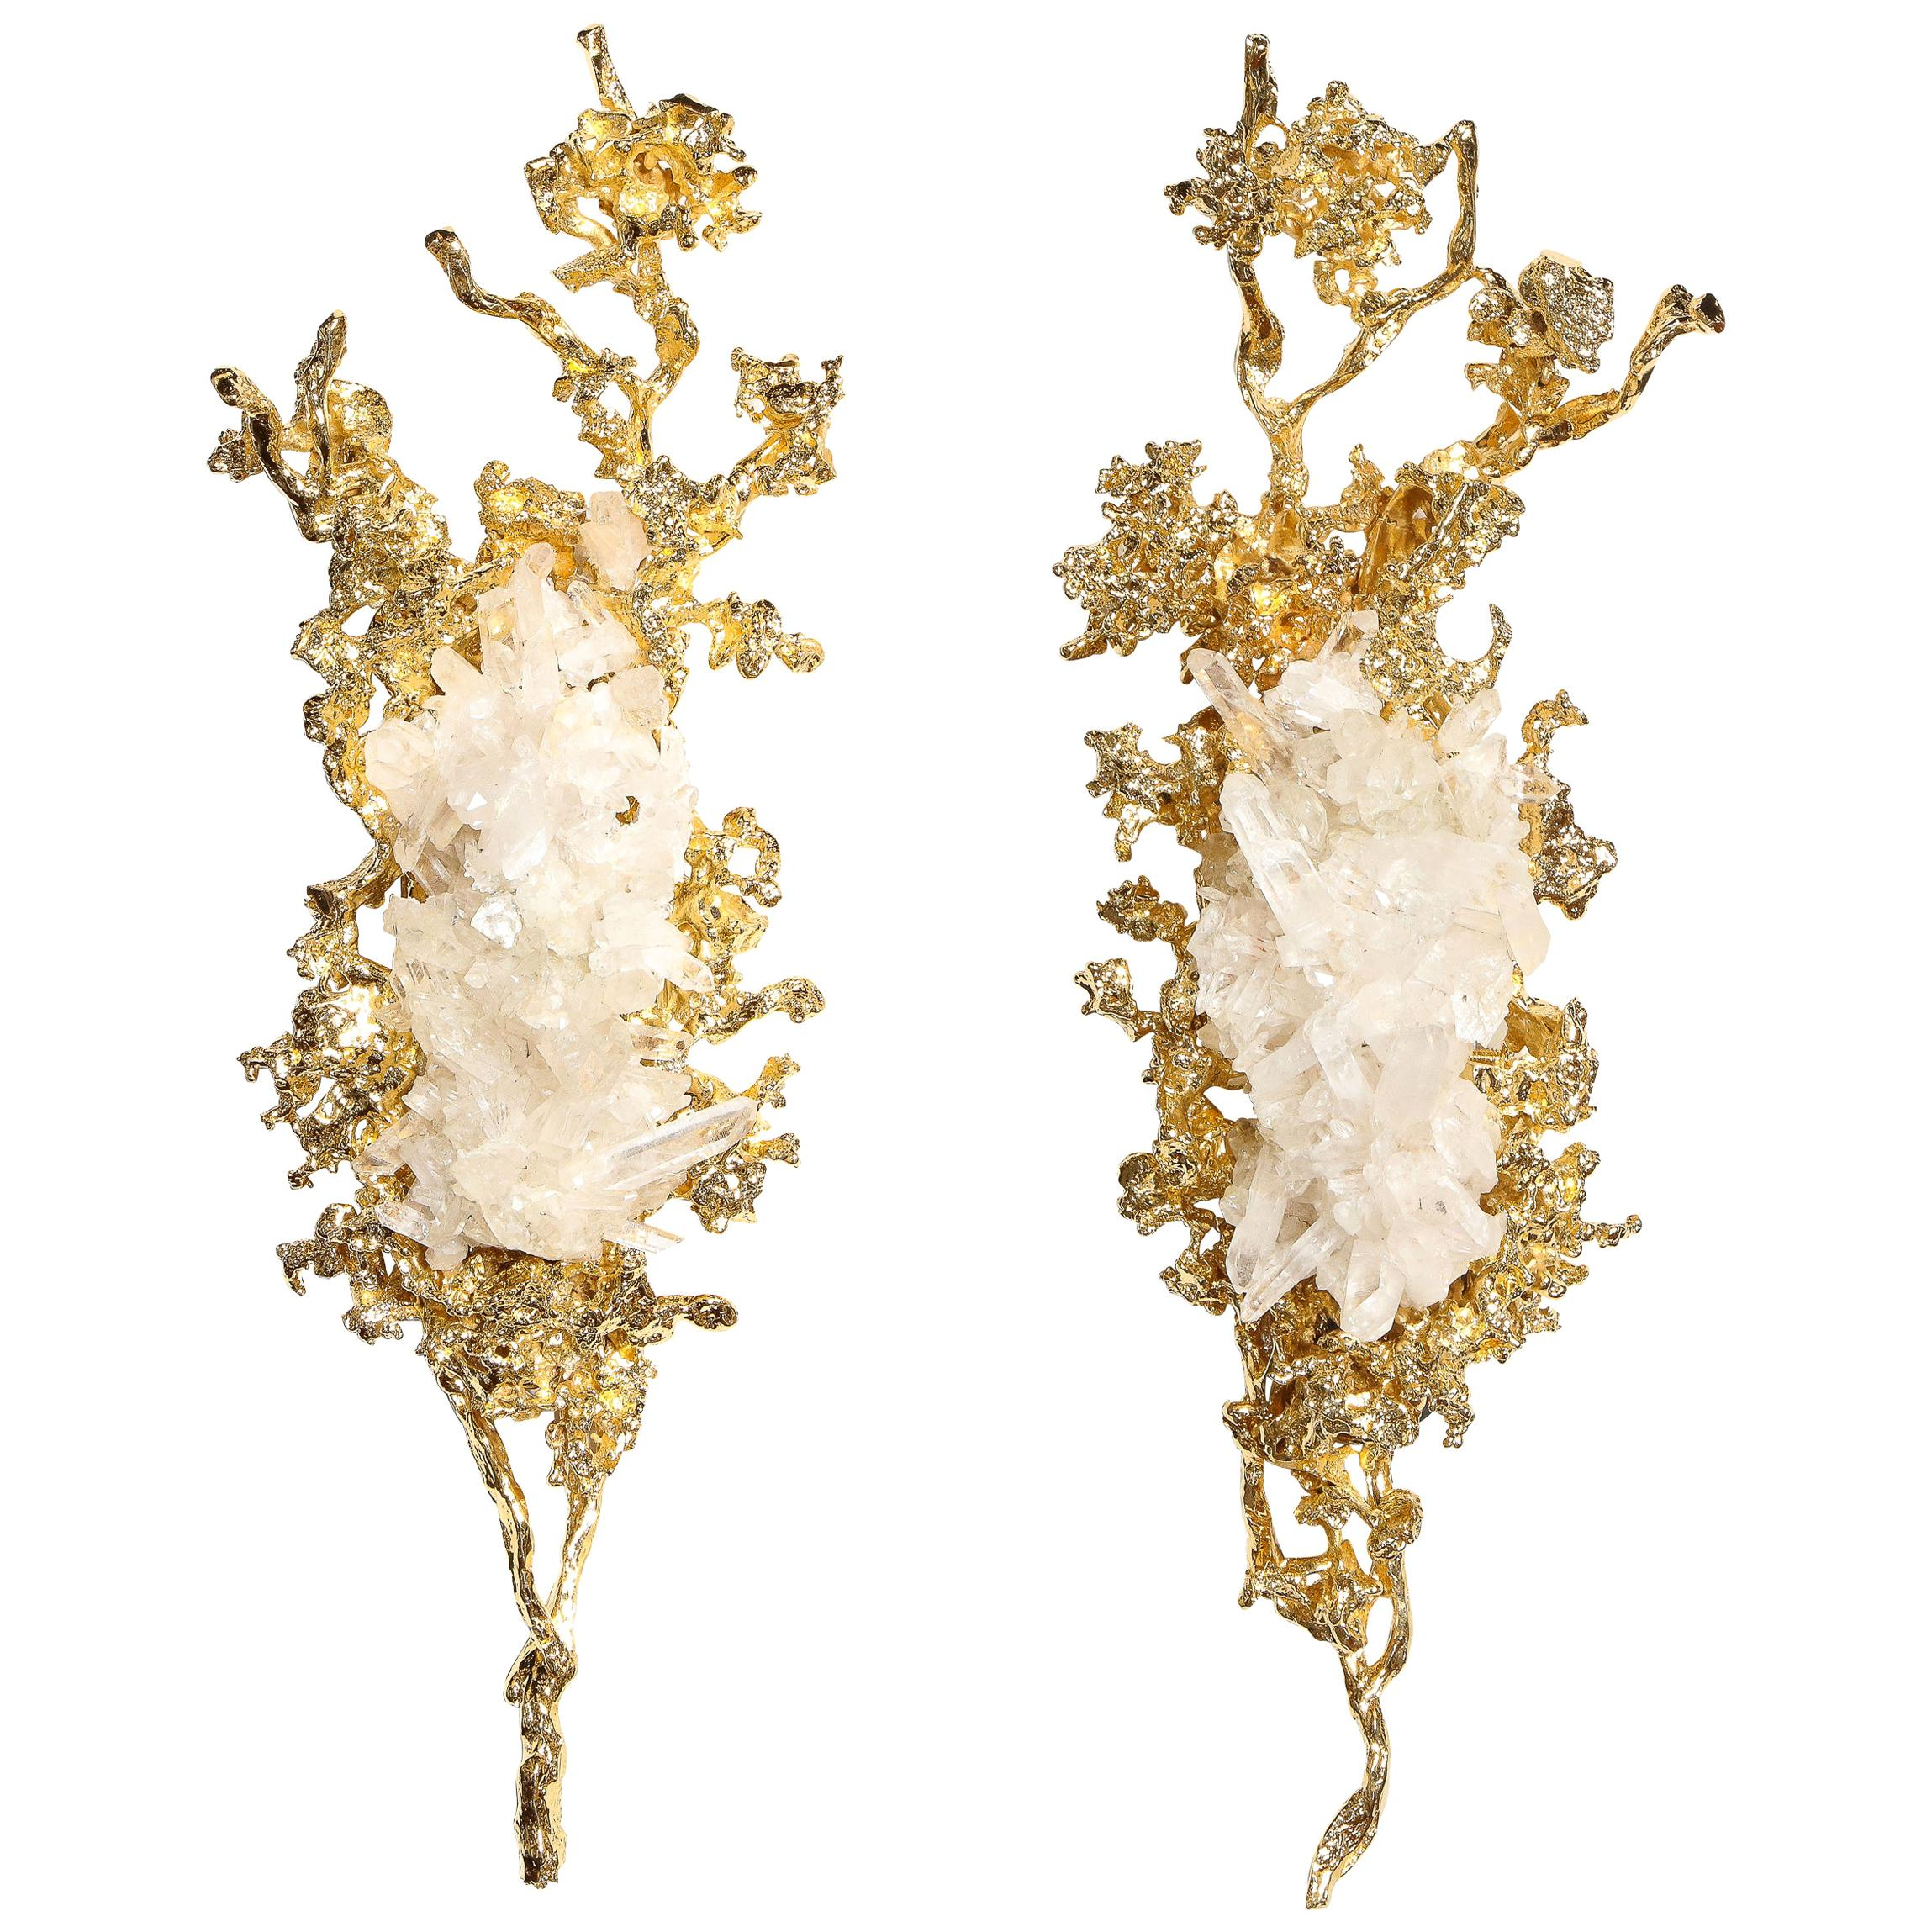 Pair of Claude Boeltz 24kt Gold-Plated Exploded Bronze Sconces w/ Rock Crystals